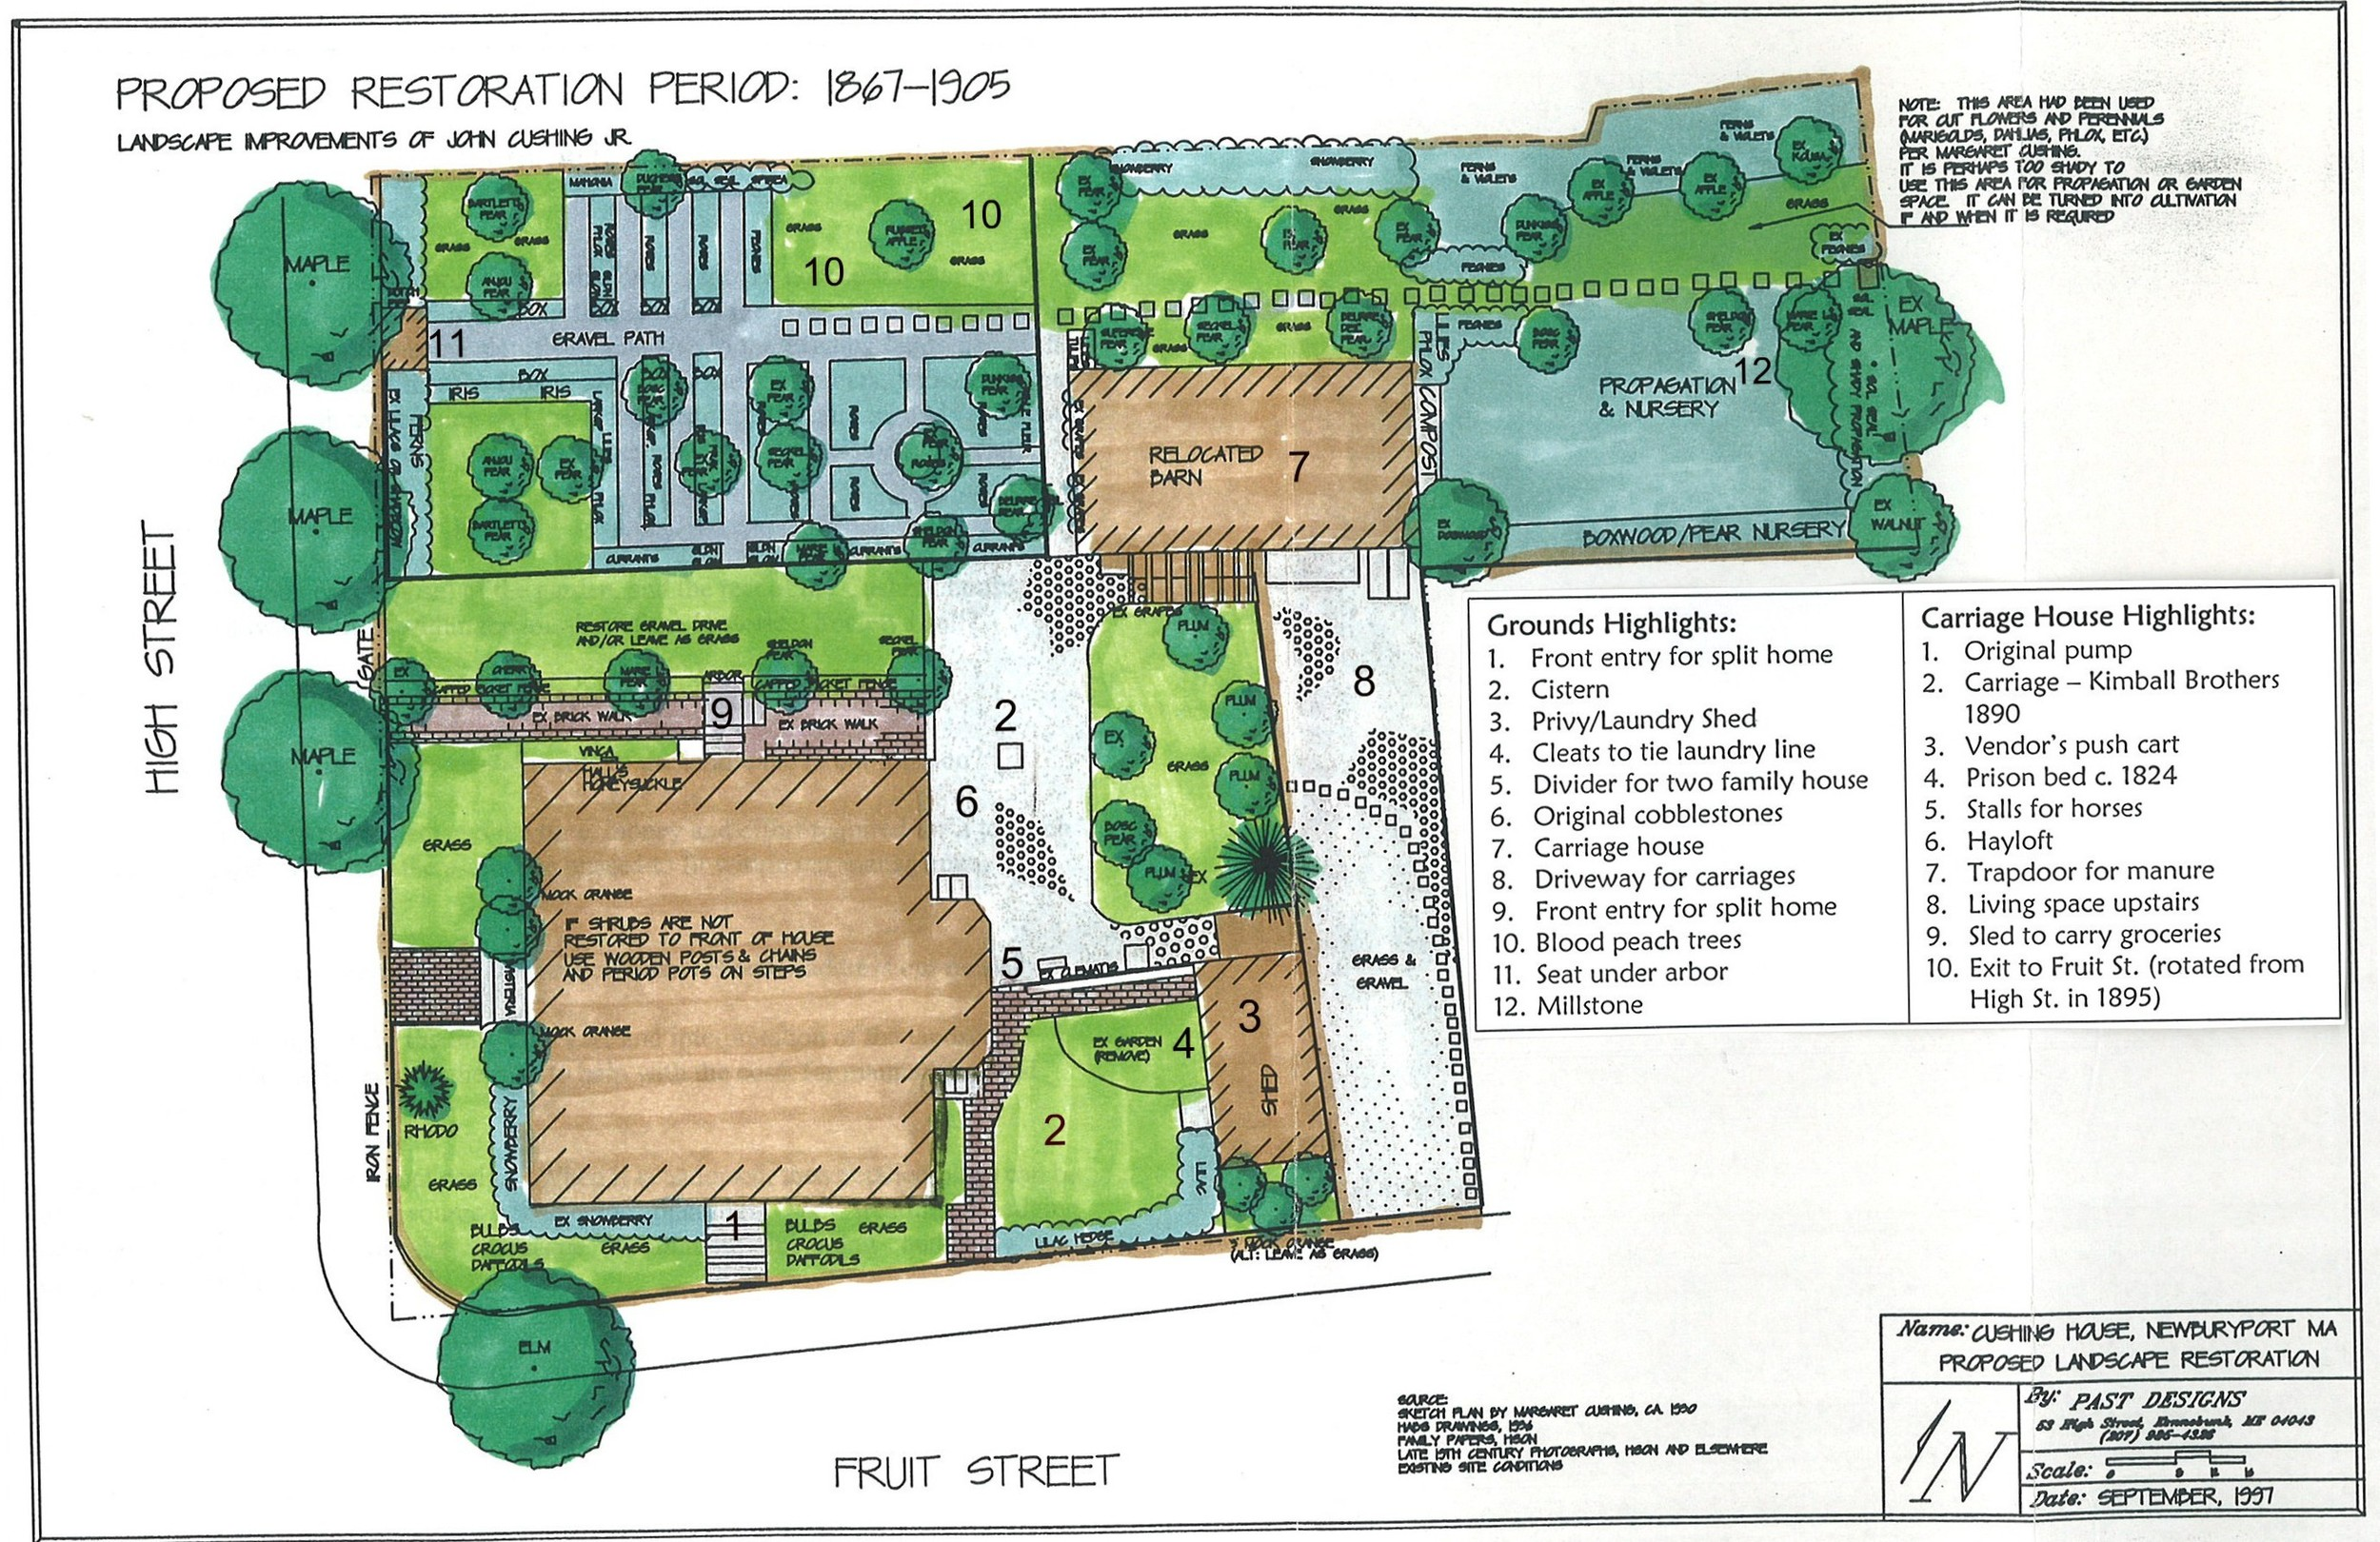 Plans for the 1998 restoration of the Cushing Garden